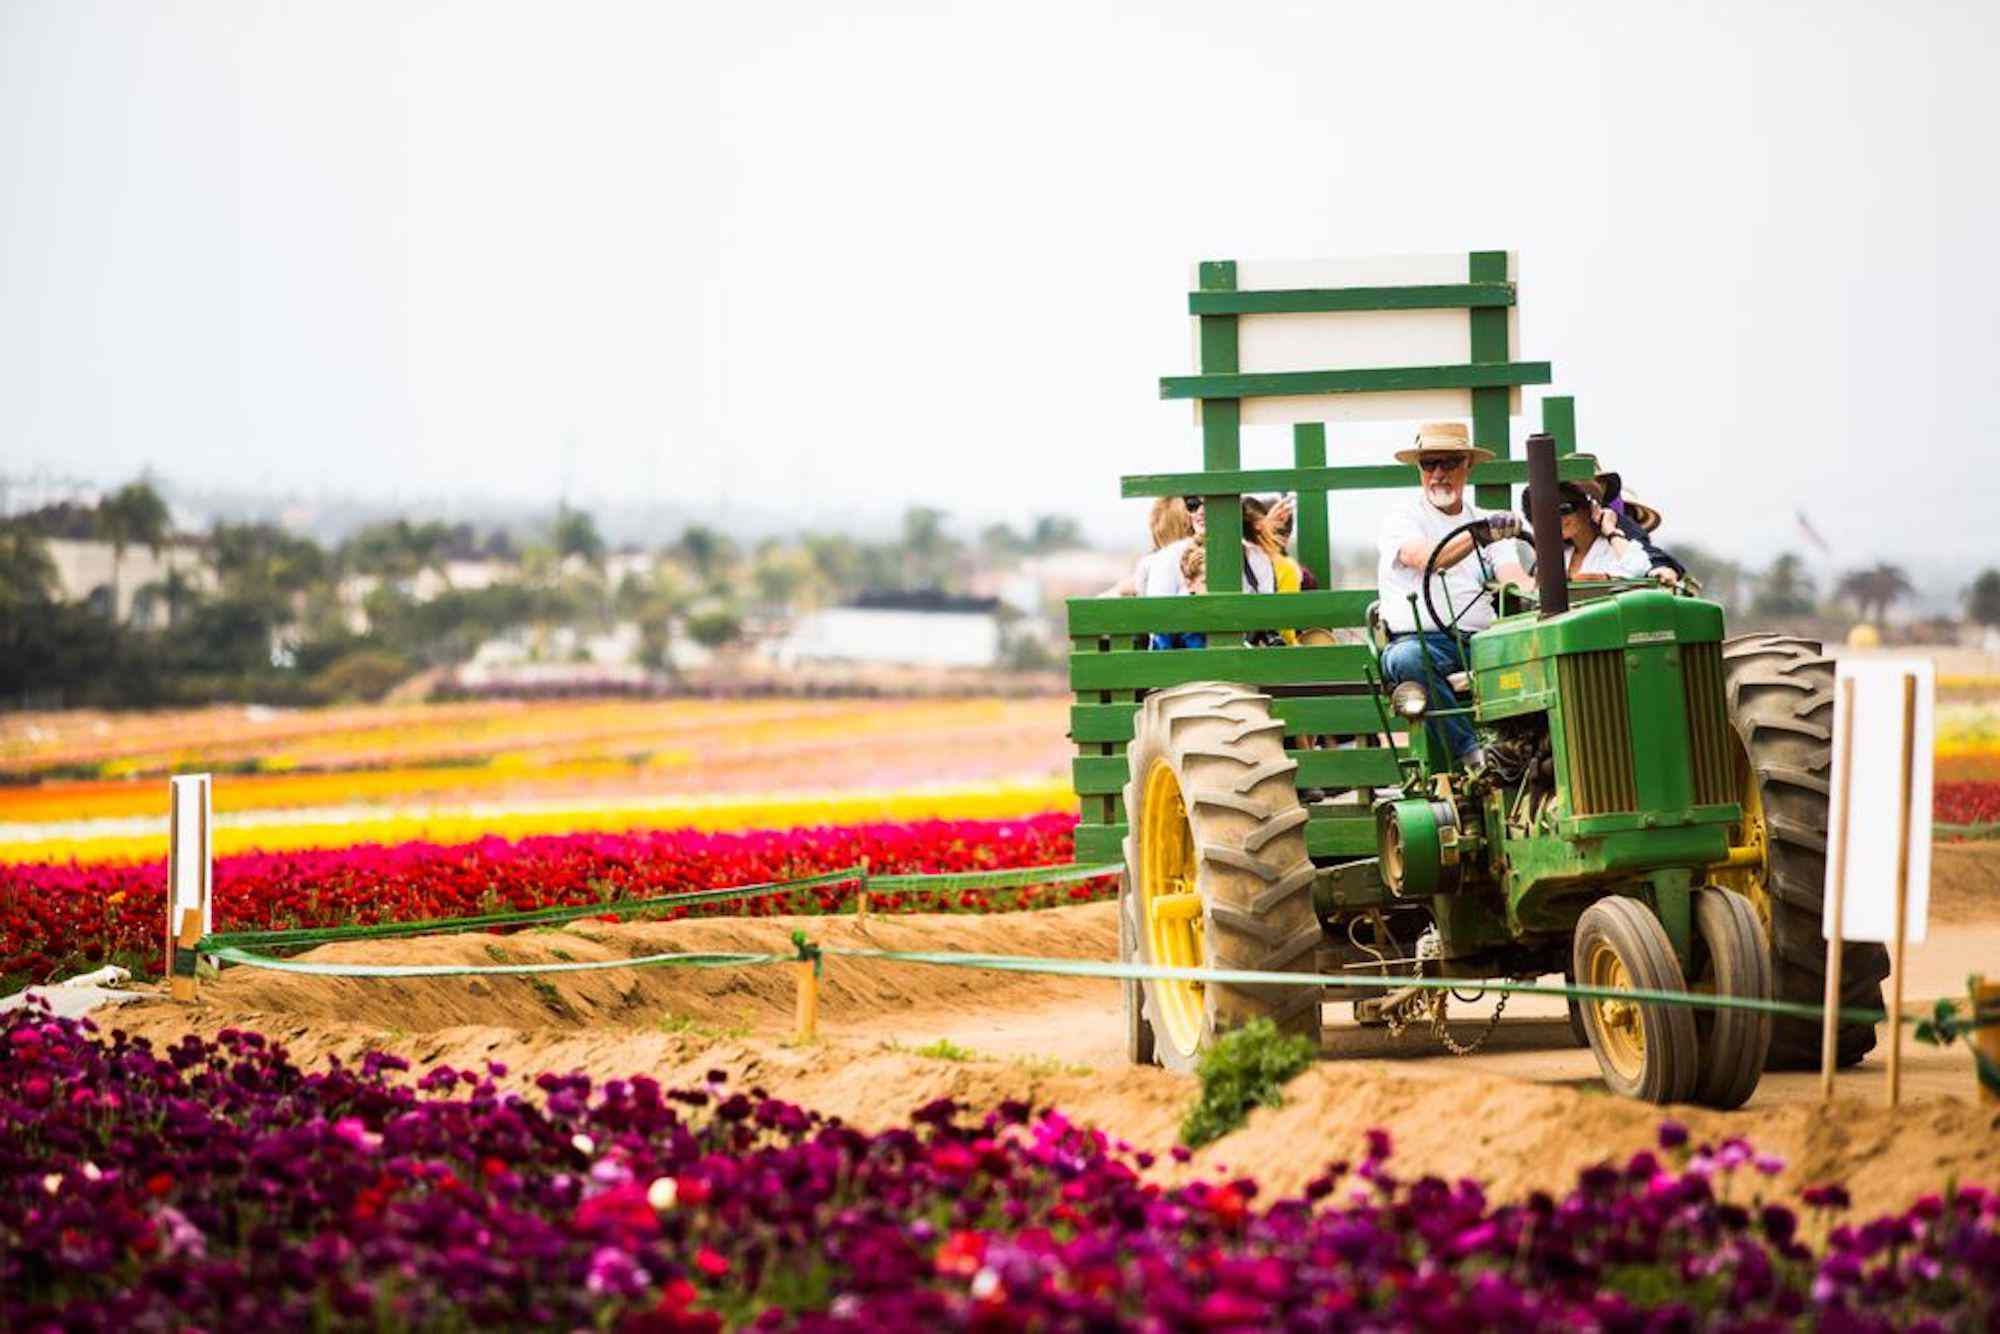 Wagon ride at The Flower Fields